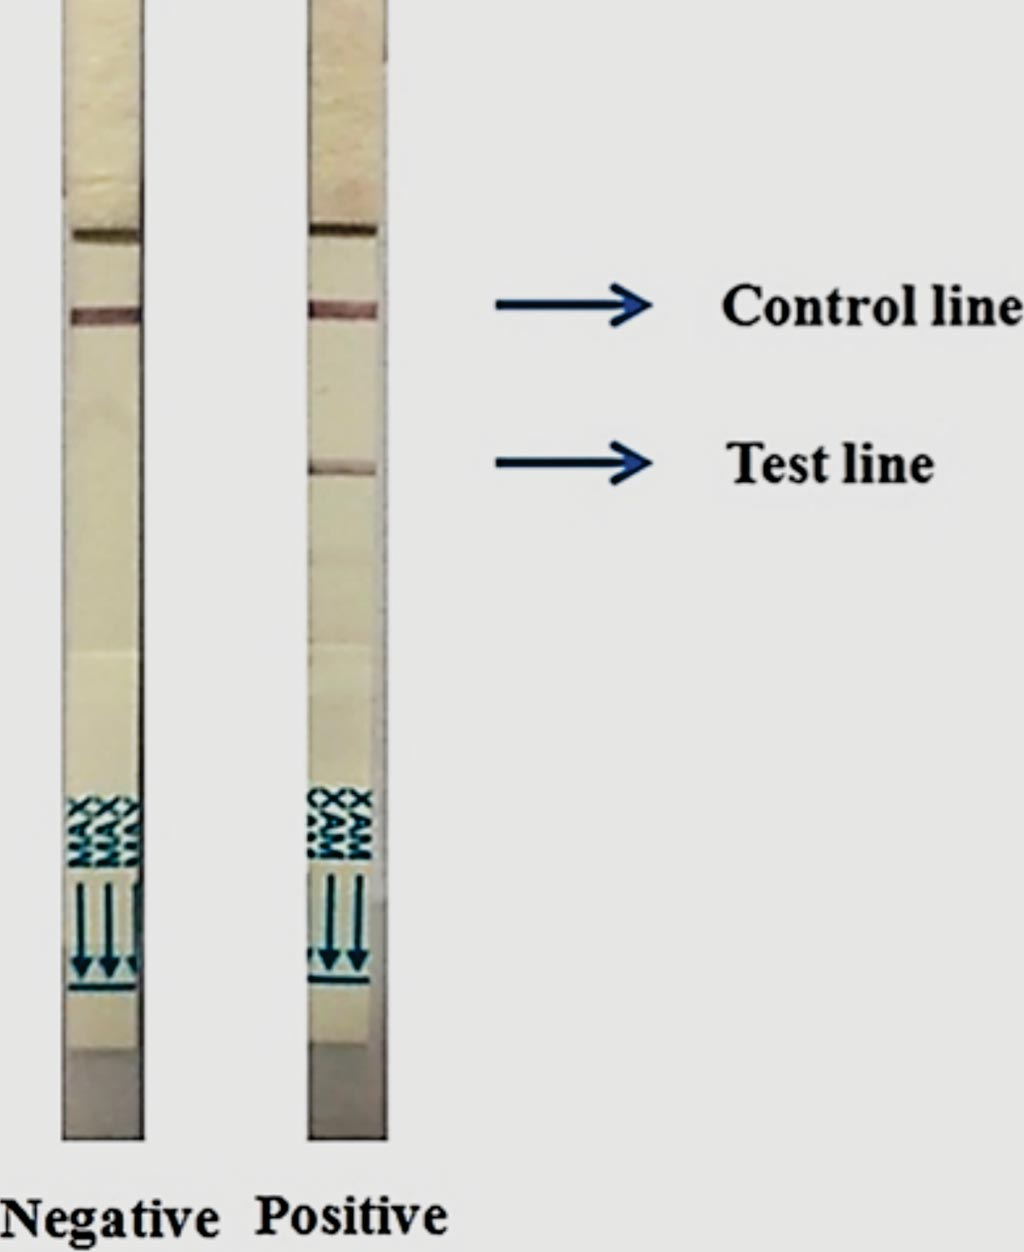 Image: Two Cholkit dipsticks showing characteristic negative (left image) and positive (right image) results after 15 minutes sample run (Photo courtesy of International Centre for Diarrhoeal Disease Research).